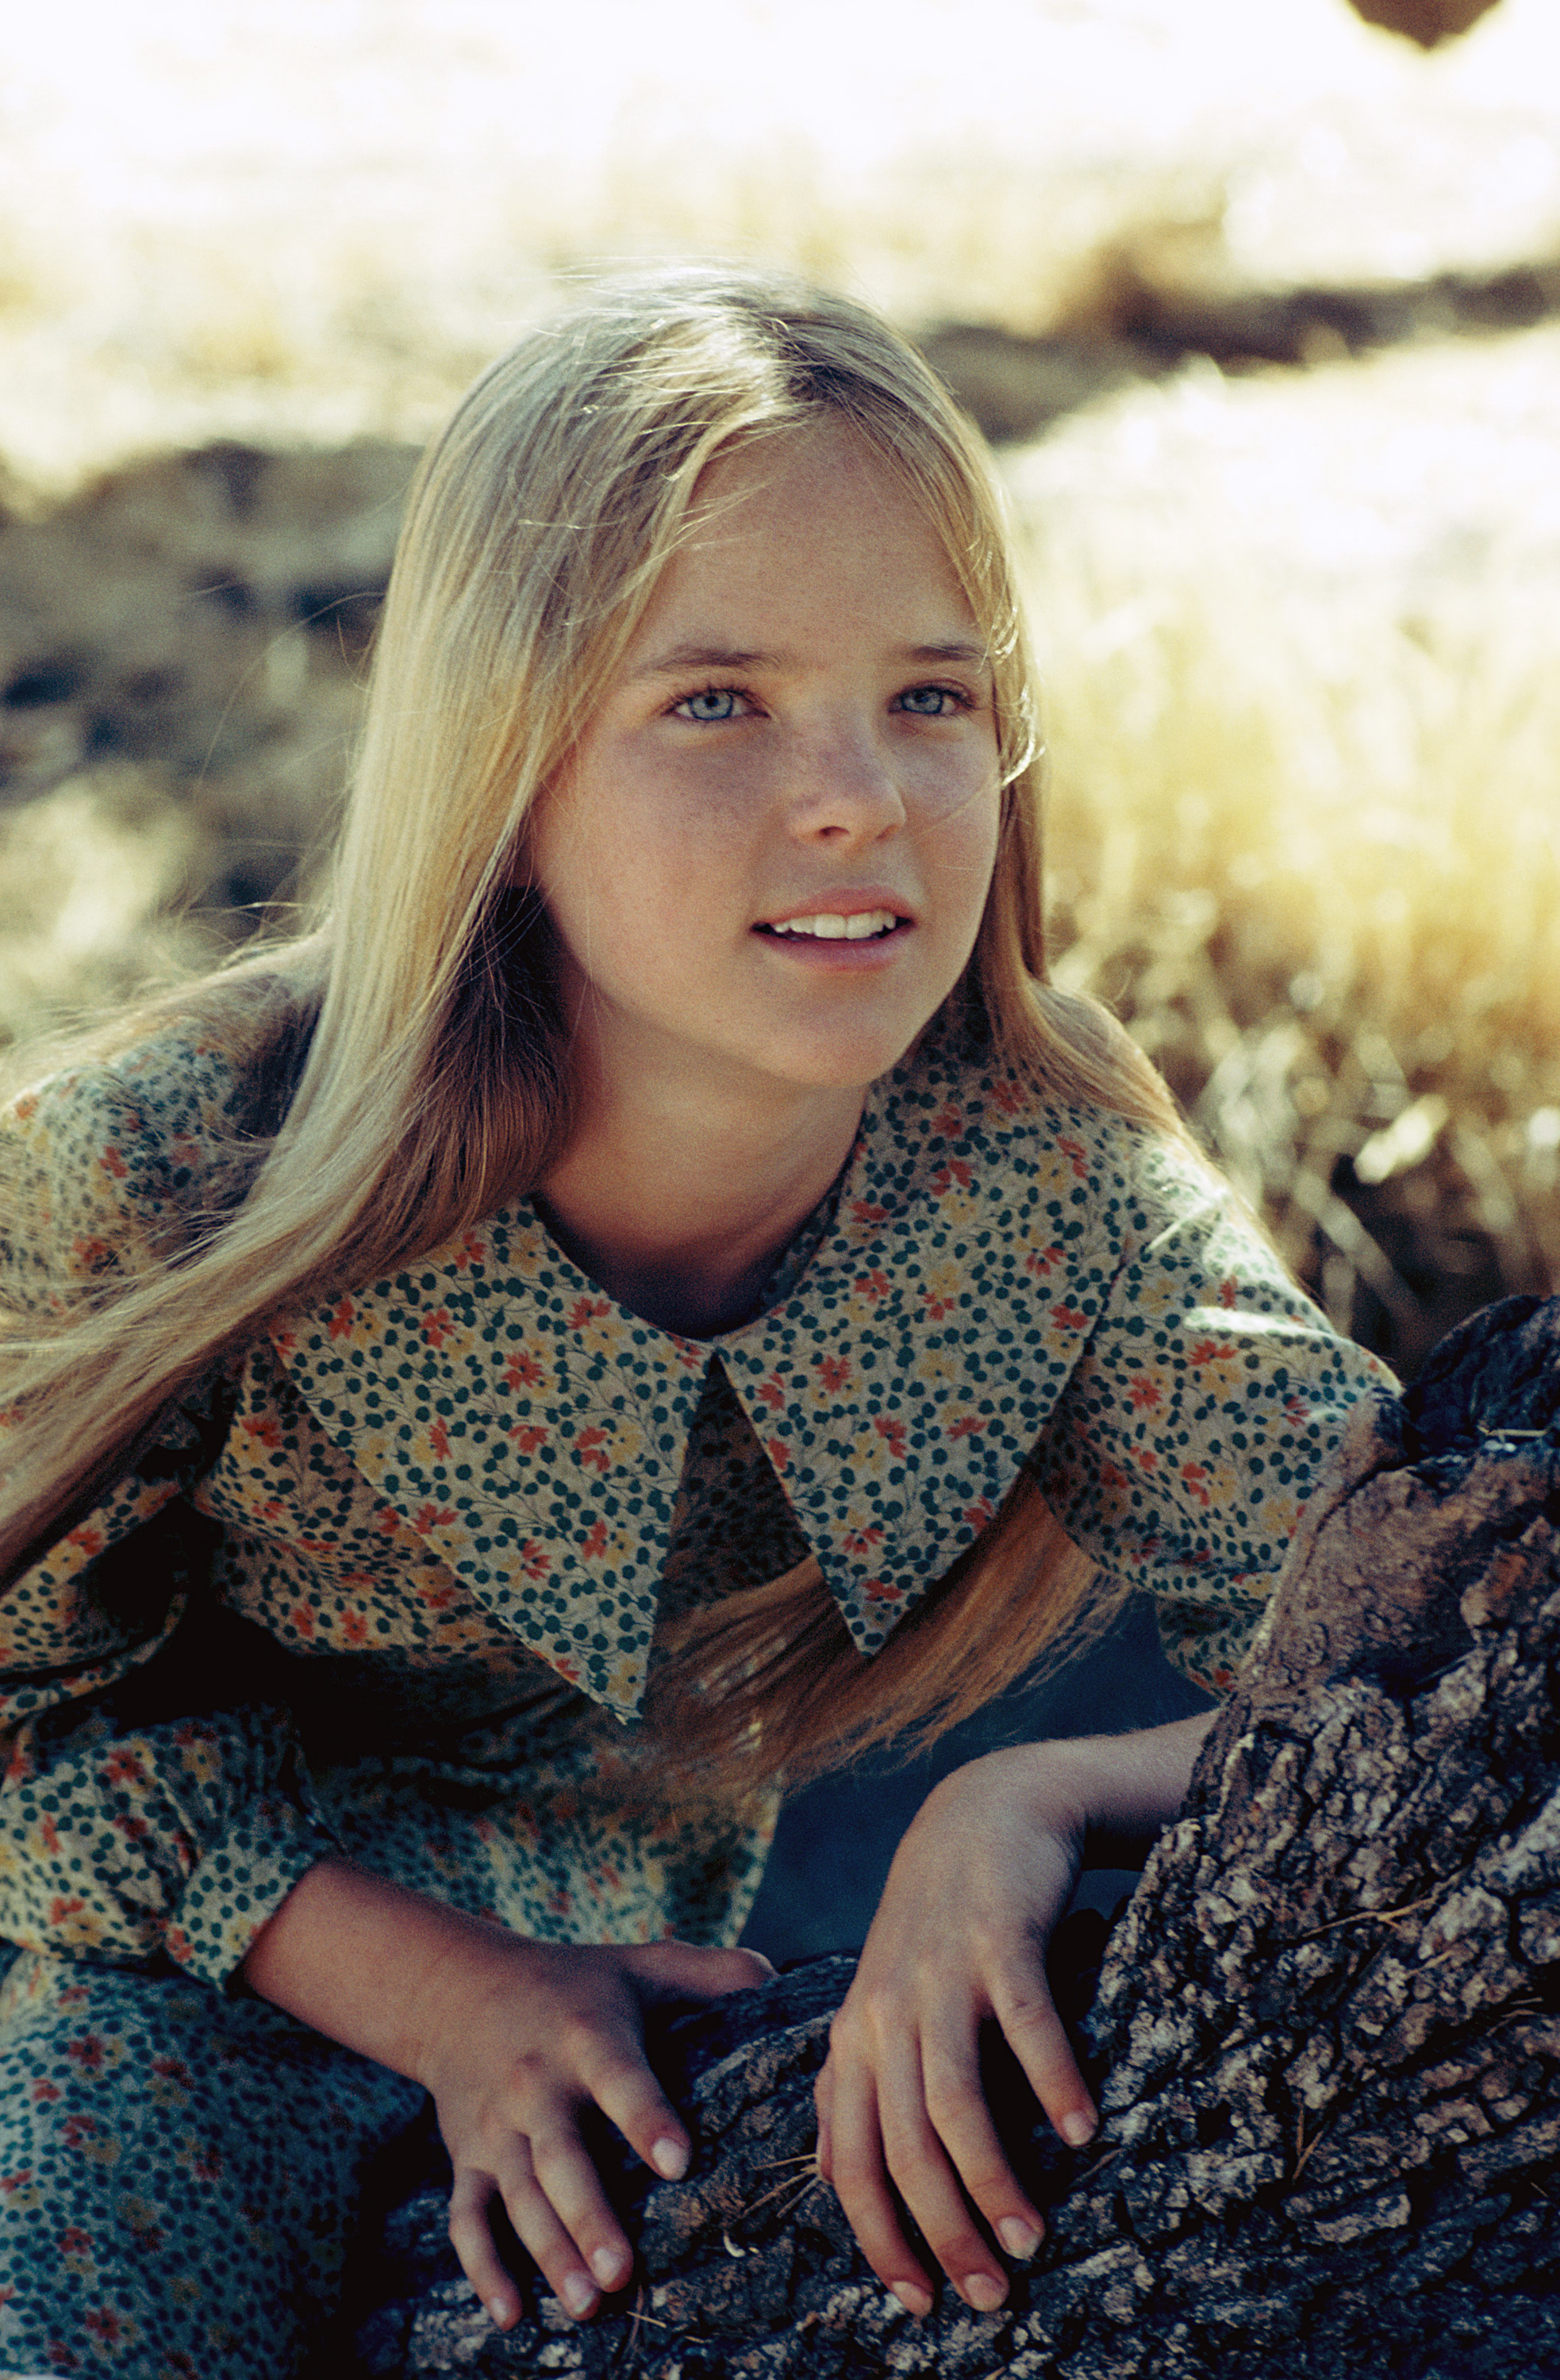 the little house on the prairie cast - where are they now?